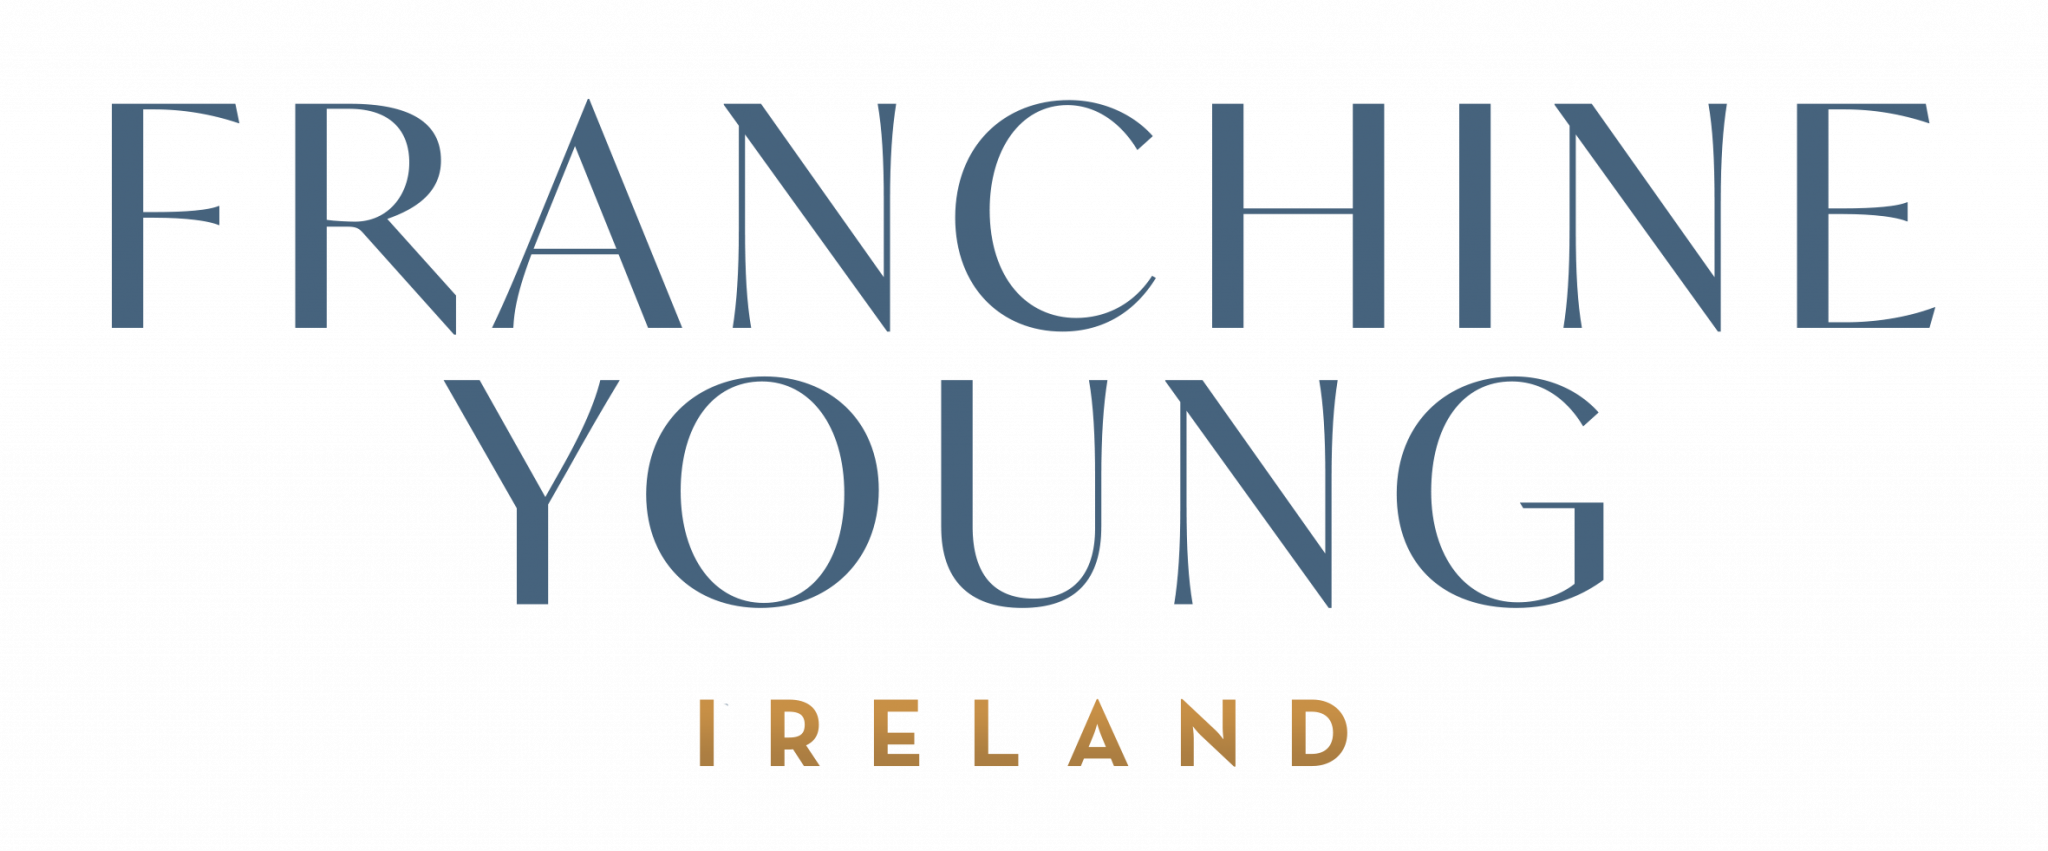 Franchine Young Ireland Provides Sustainable and Organic Skin Care Products